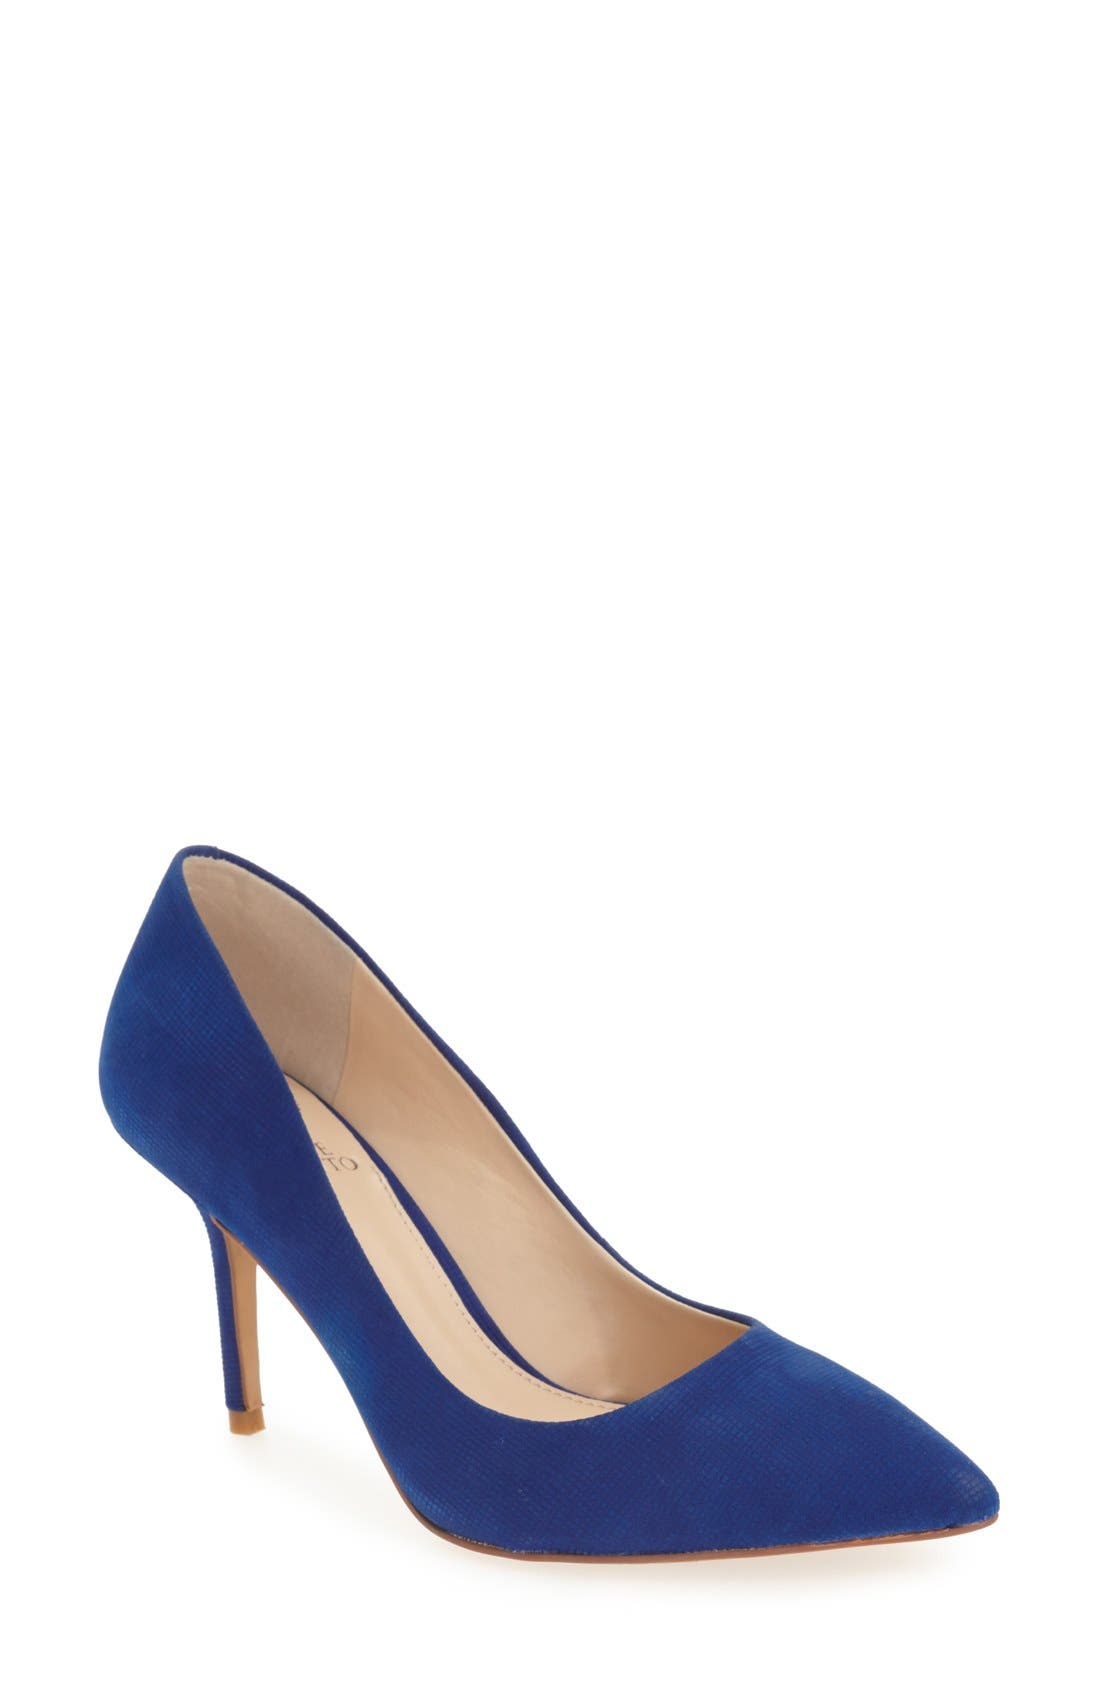 Main Image - Vince Camuto 'Salest' Pump (Women)